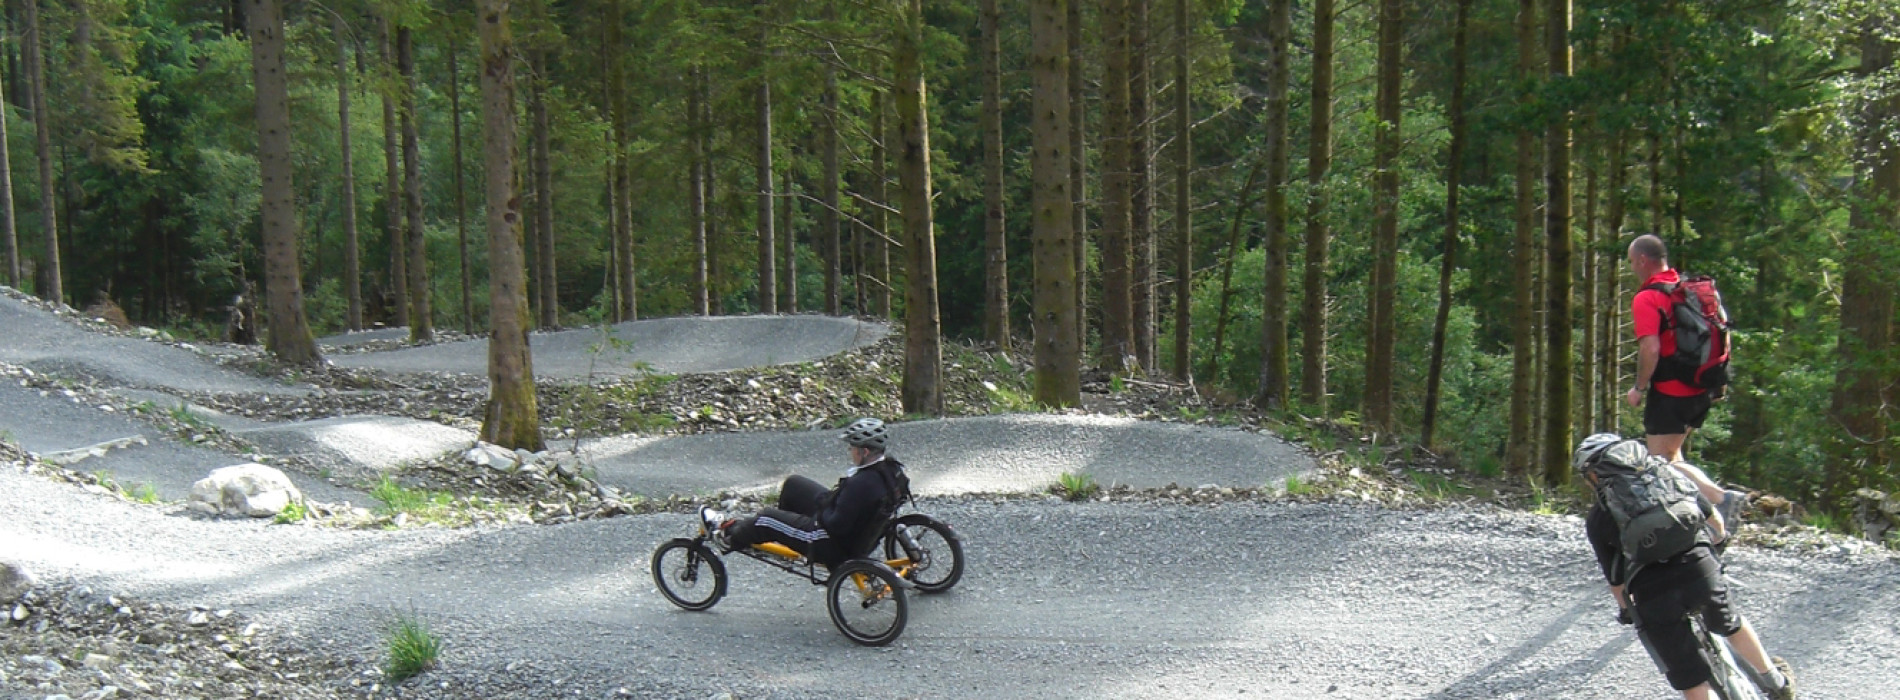 Adaptive Mountain Biking: Getting off the tarmac and onto the dirt!